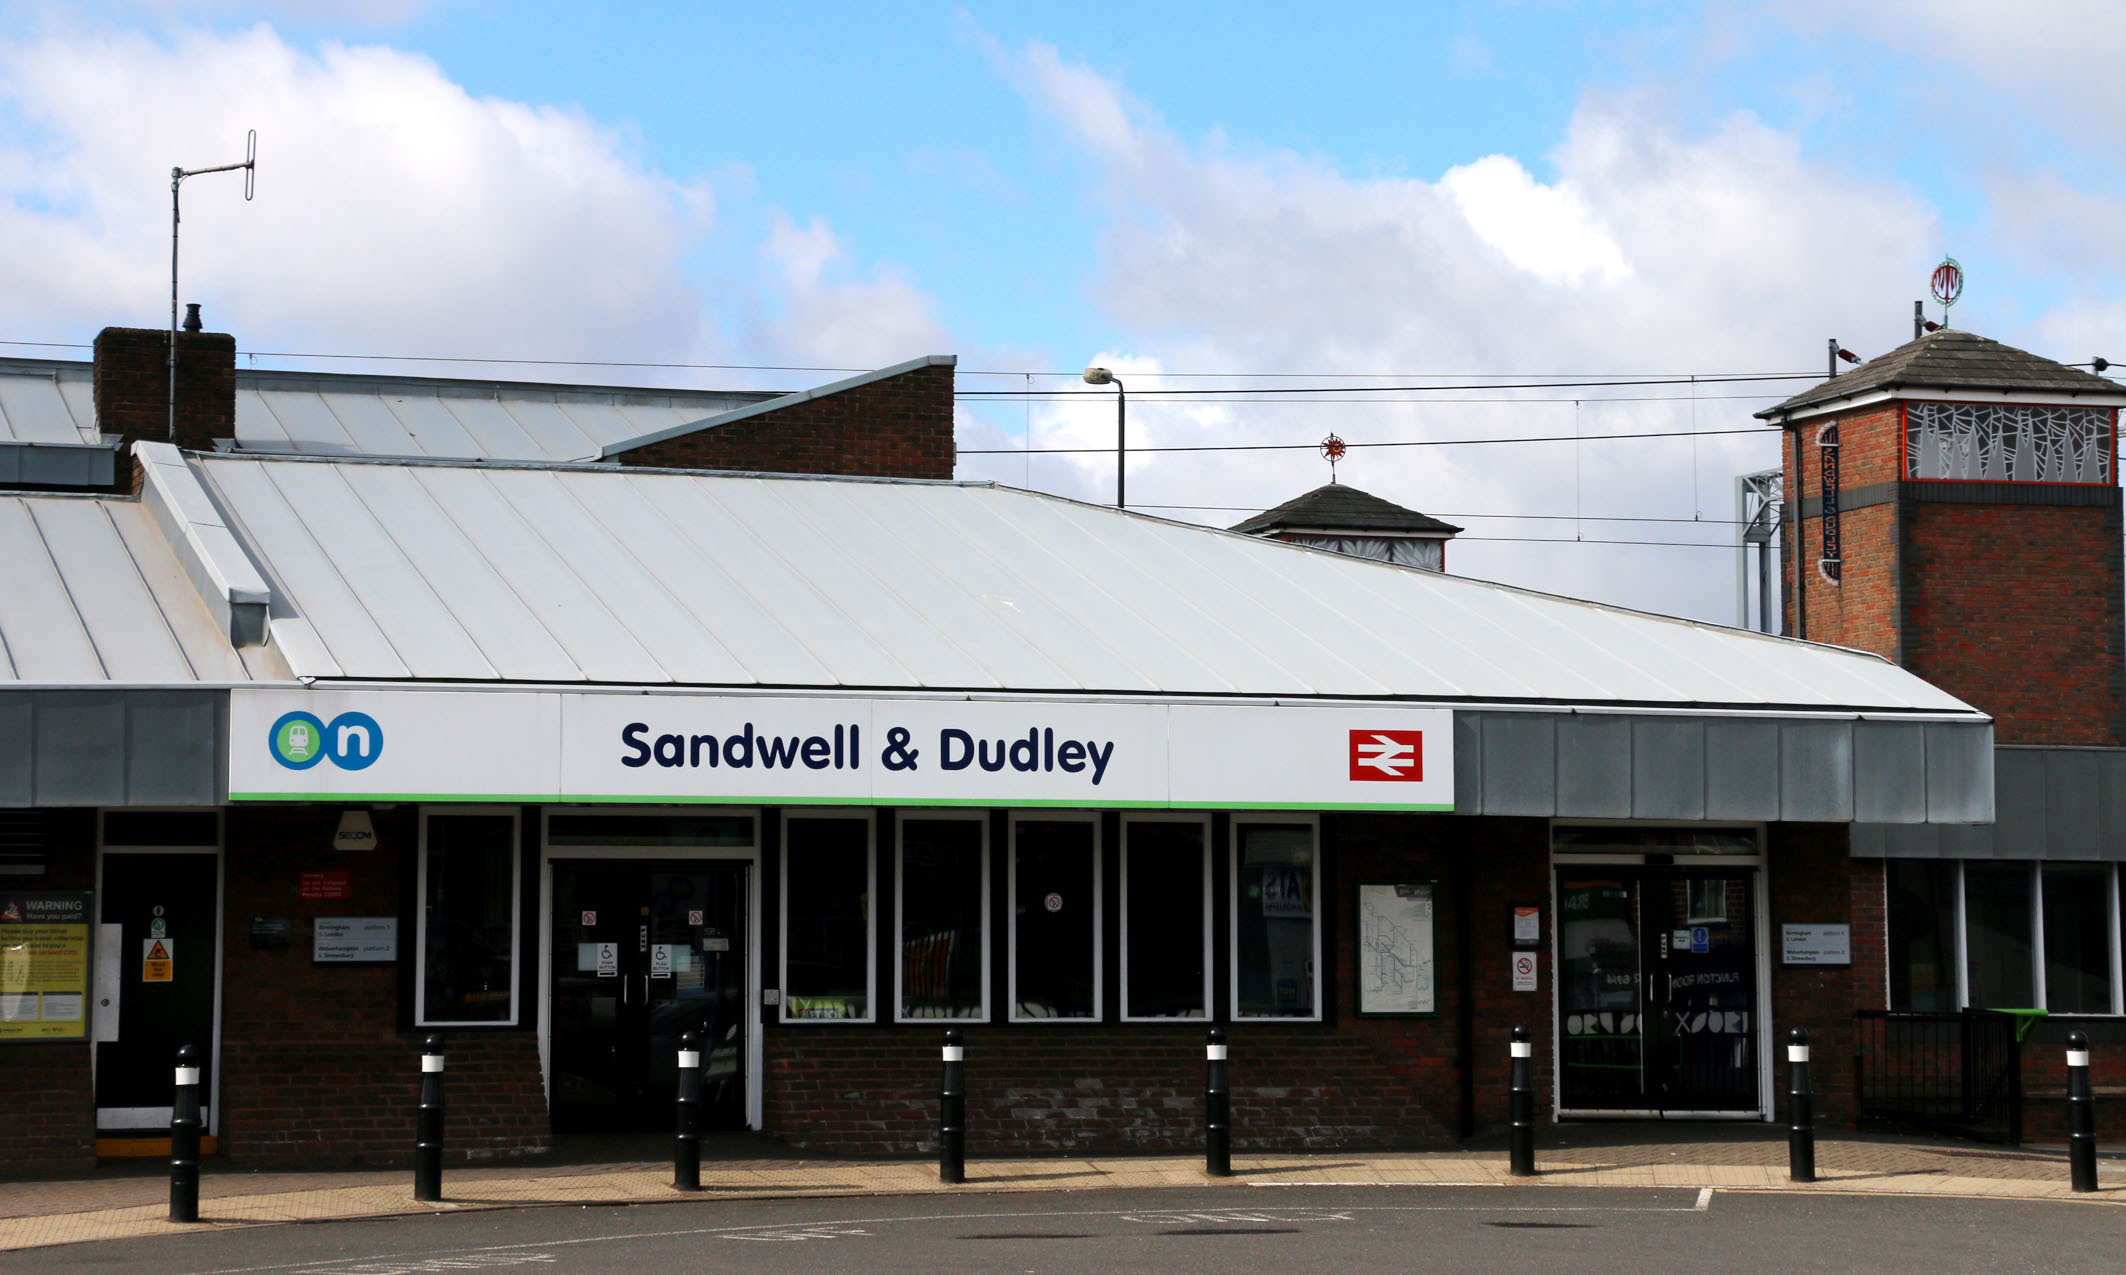 Sandwell and Dudley Station